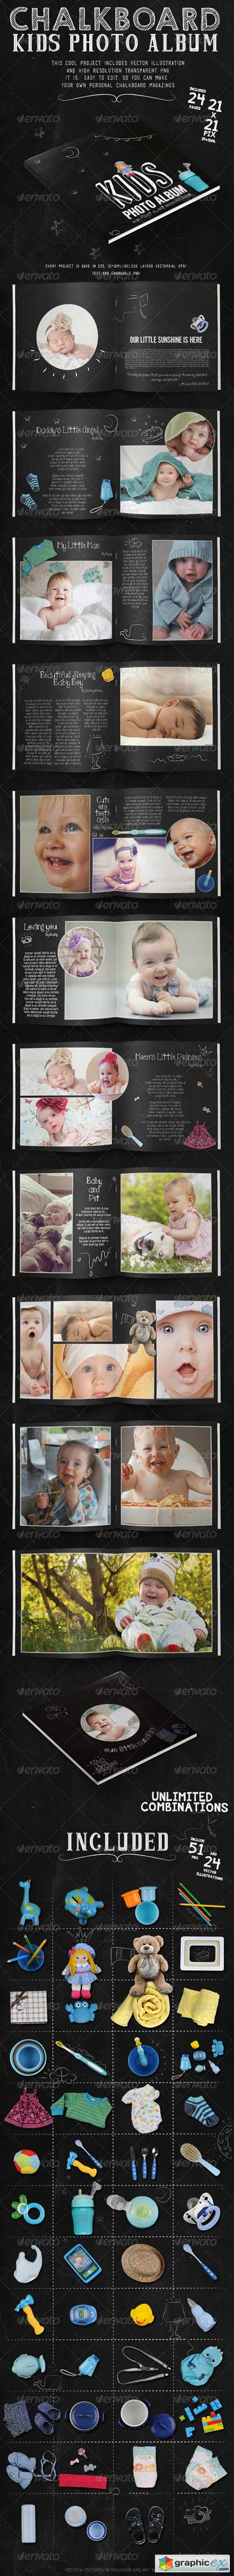 Kids Chalkboard Photo Album 7962535